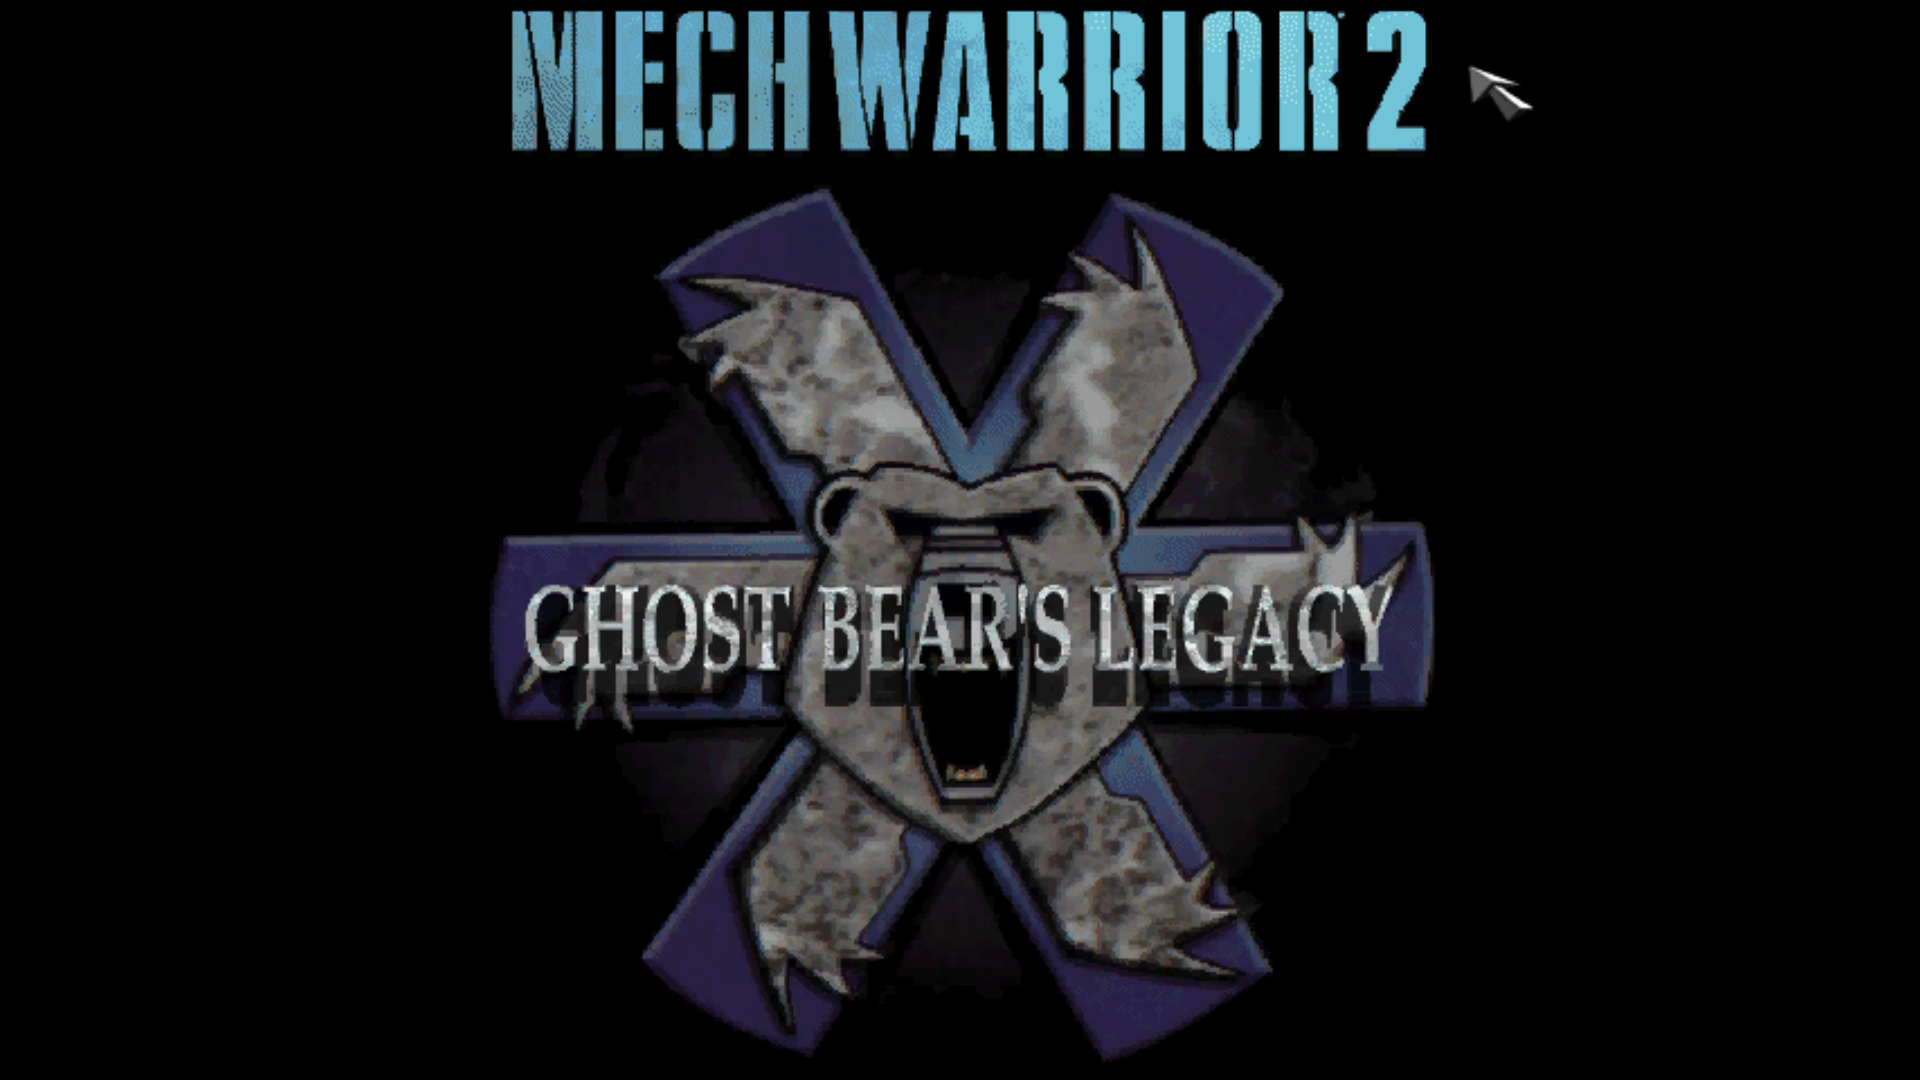 Figure 10 - Ghost Bear's Legacy is an official add-on for Mech Warrior 2, also available for DOS